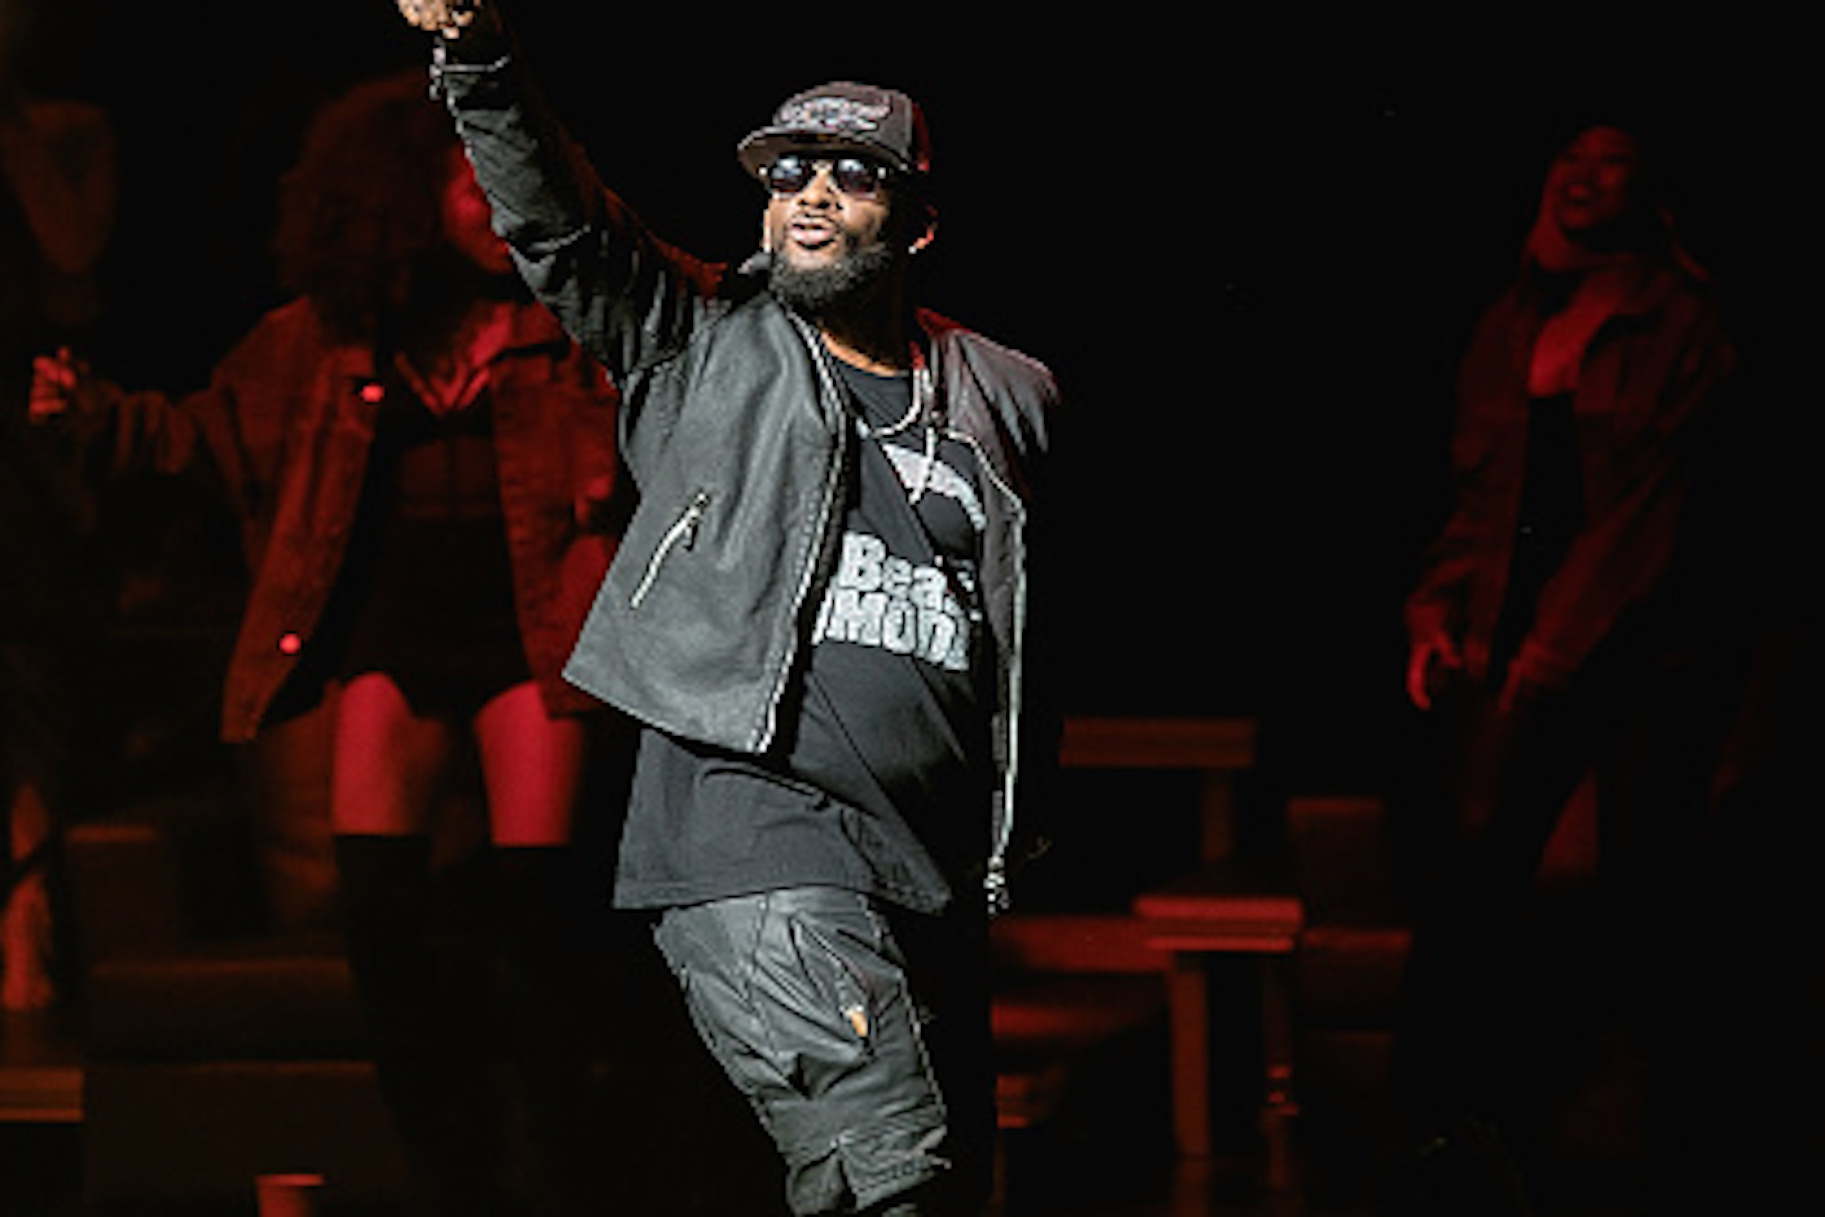 R. Kelly Fails To Show In Court After He 'Refused Transport,' Prosecutor Says